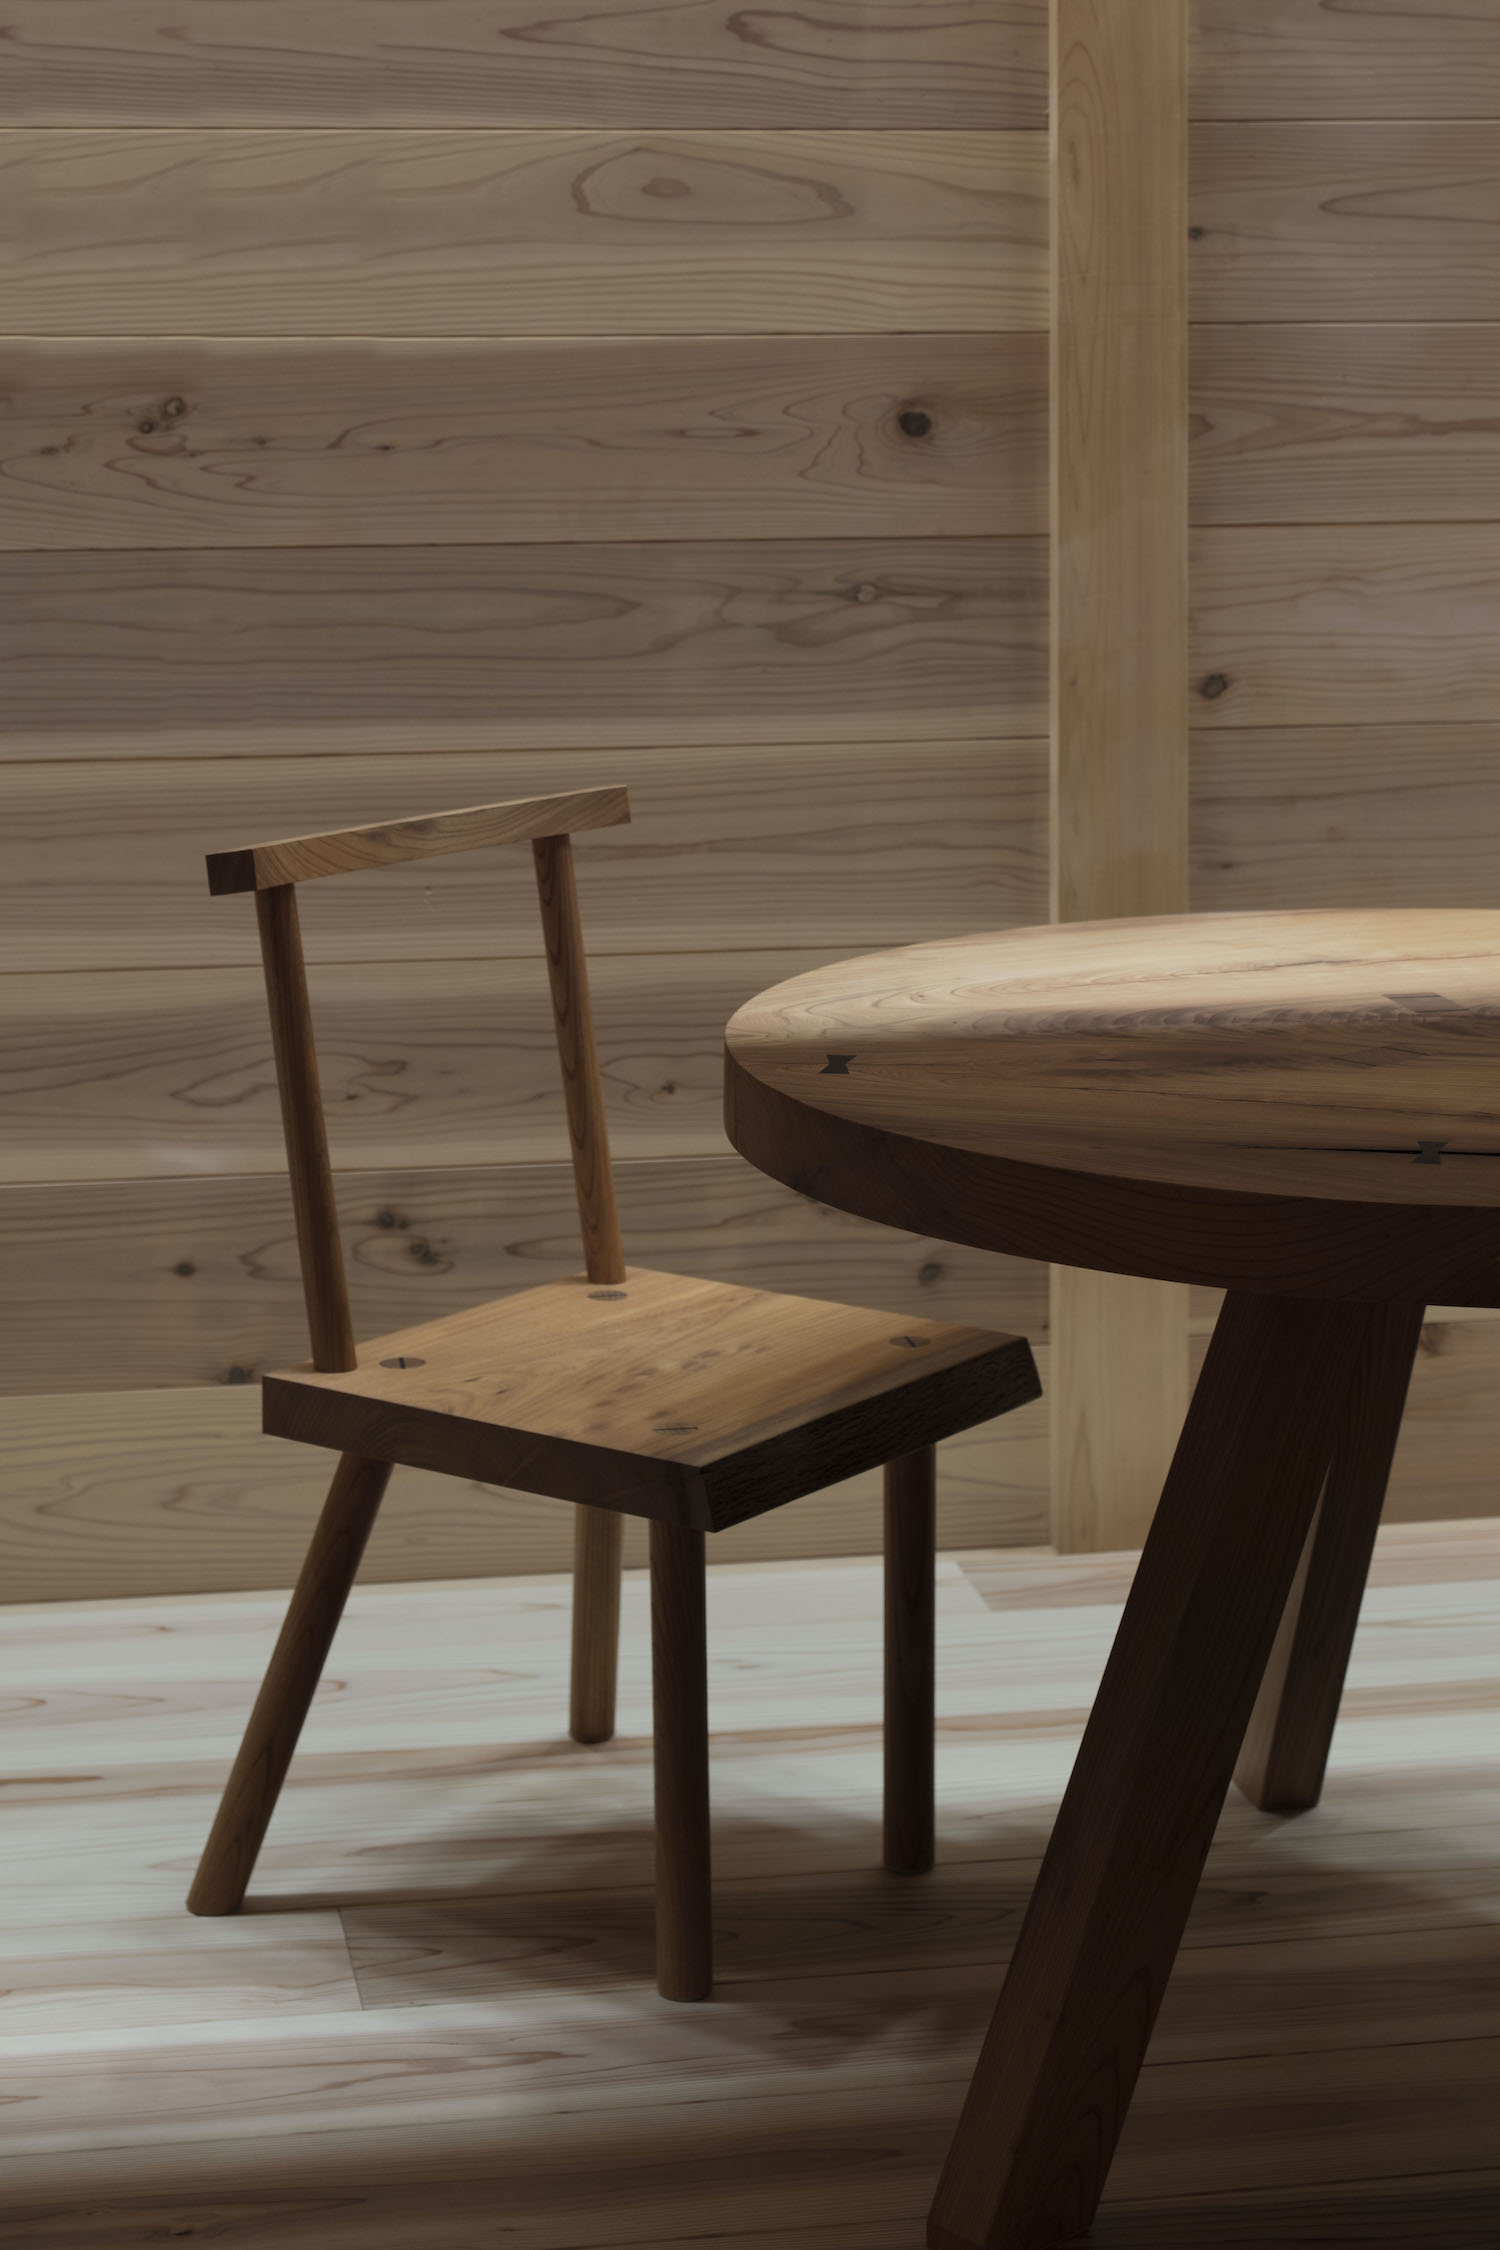 wooden chair and wooden table